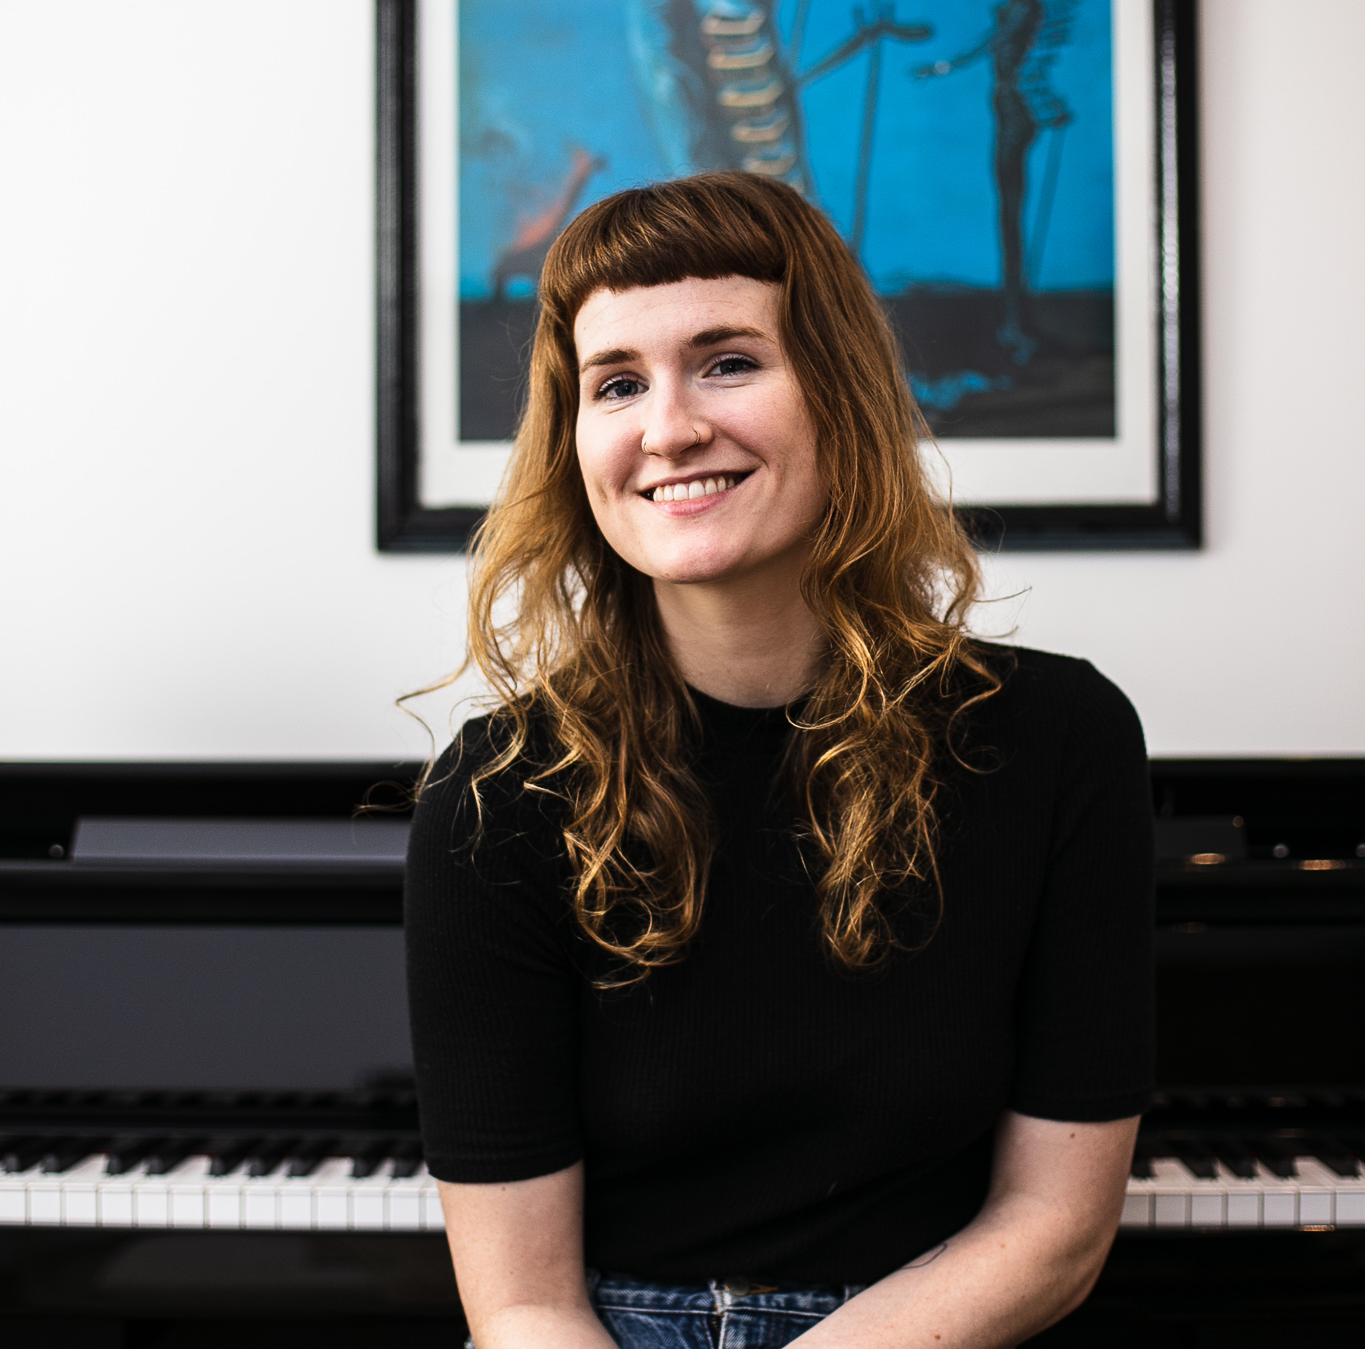 Piano teacher - Hannah - has a lovely piano studio near Seven Dials. She is thoughtful, organised and fantastic to work with. A wonderful person and an excellent piano teacher. We're very lucky to have her with us.